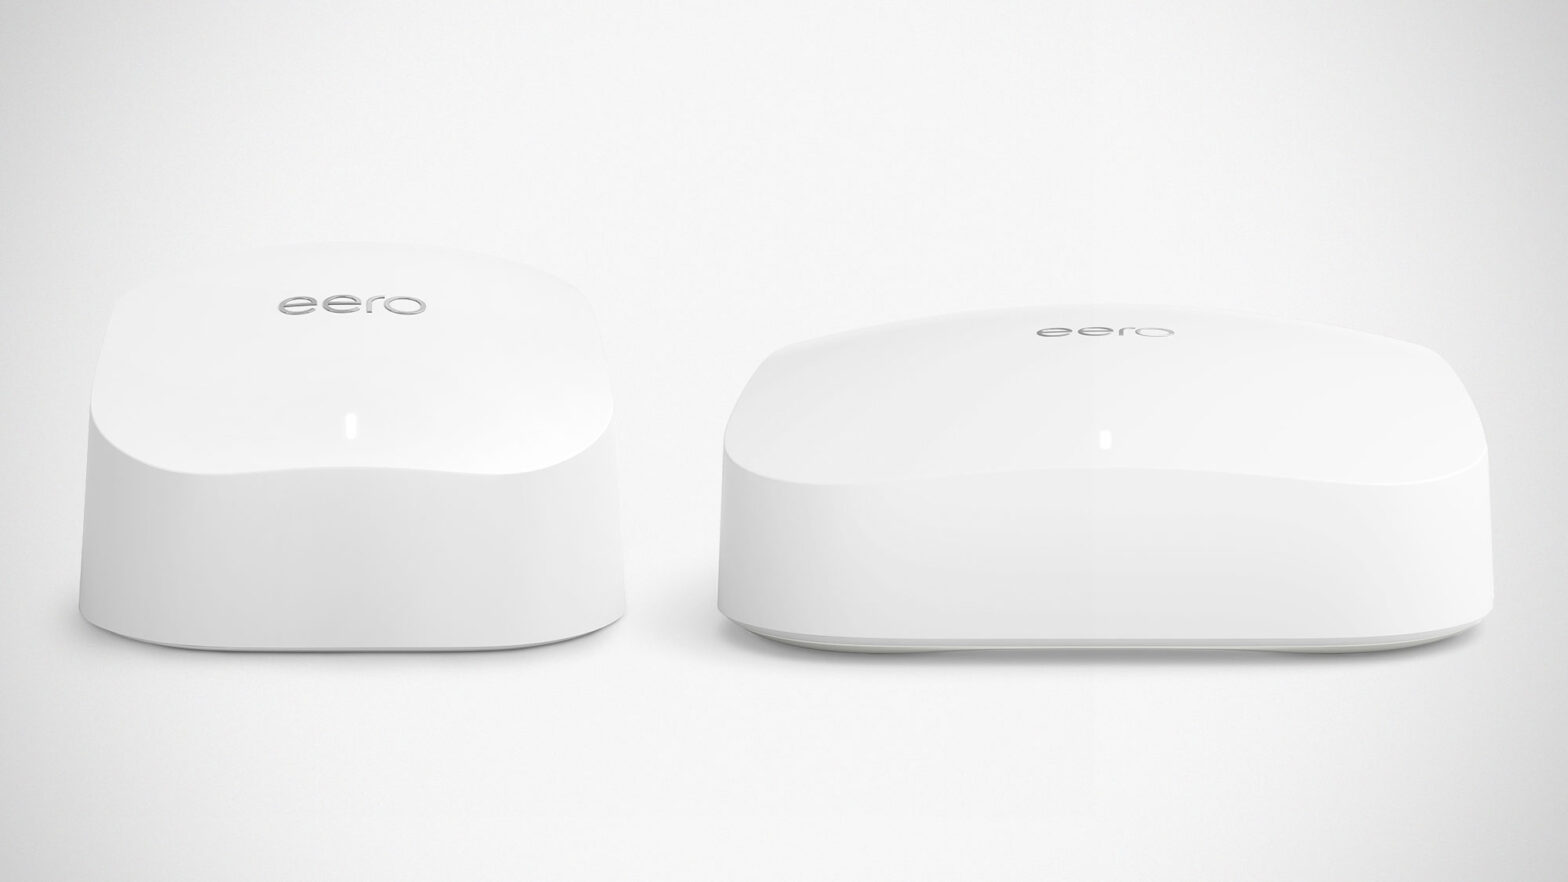 Amazon eero 6 Series Mesh Wi-Fi Systems